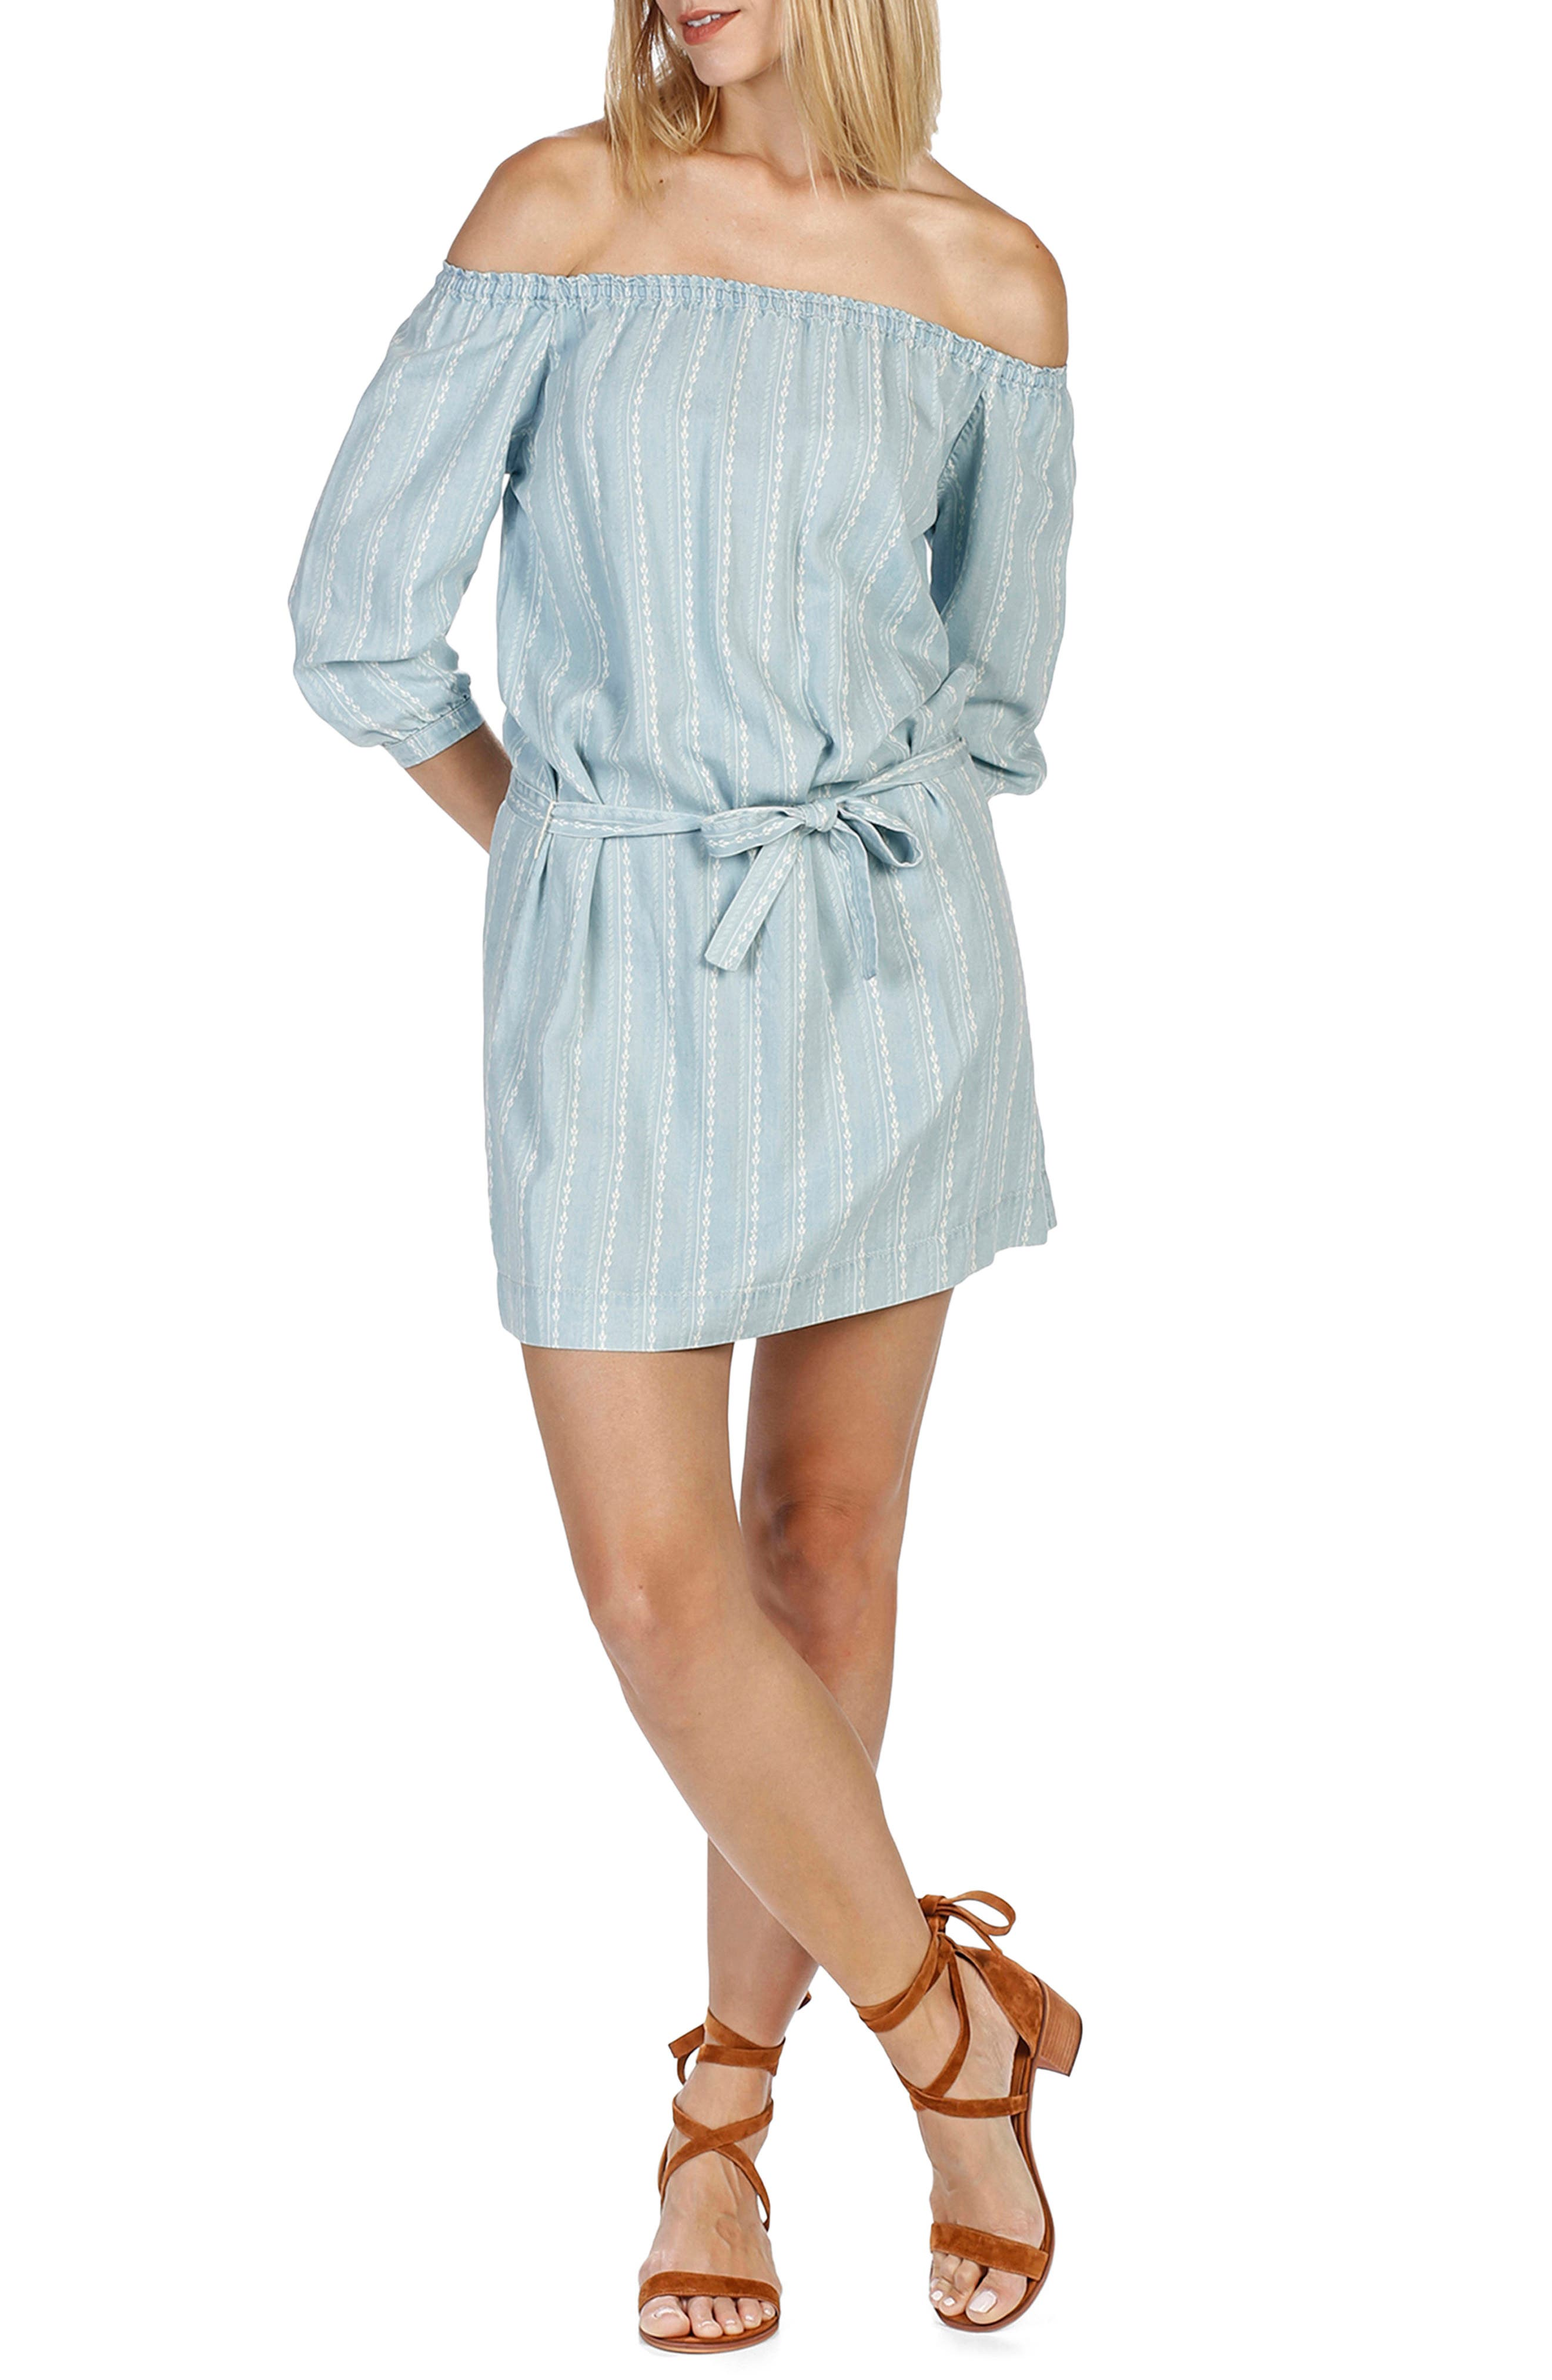 Beatrice Chambray Off the Shoulder Dress,                             Main thumbnail 1, color,                             400